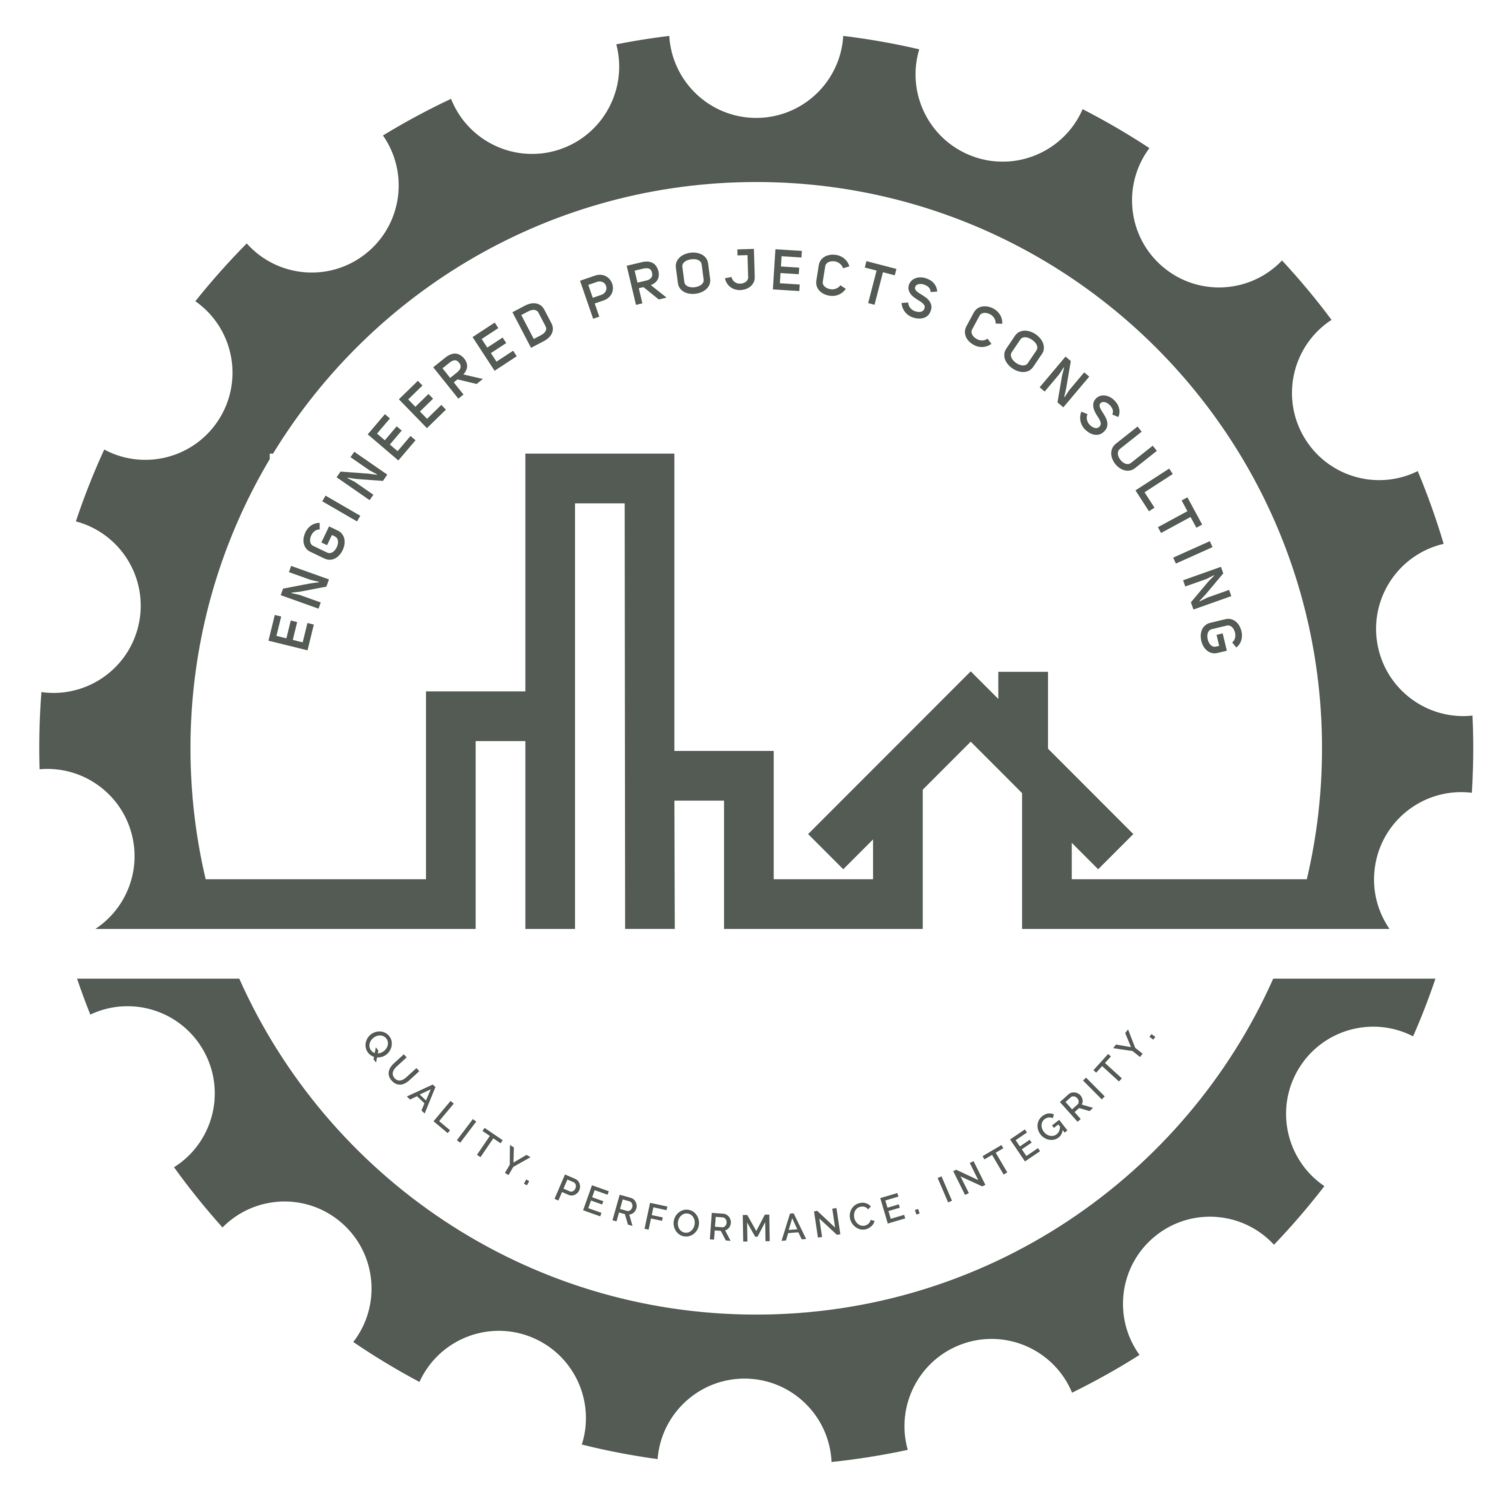 Engineered Projects Consulting